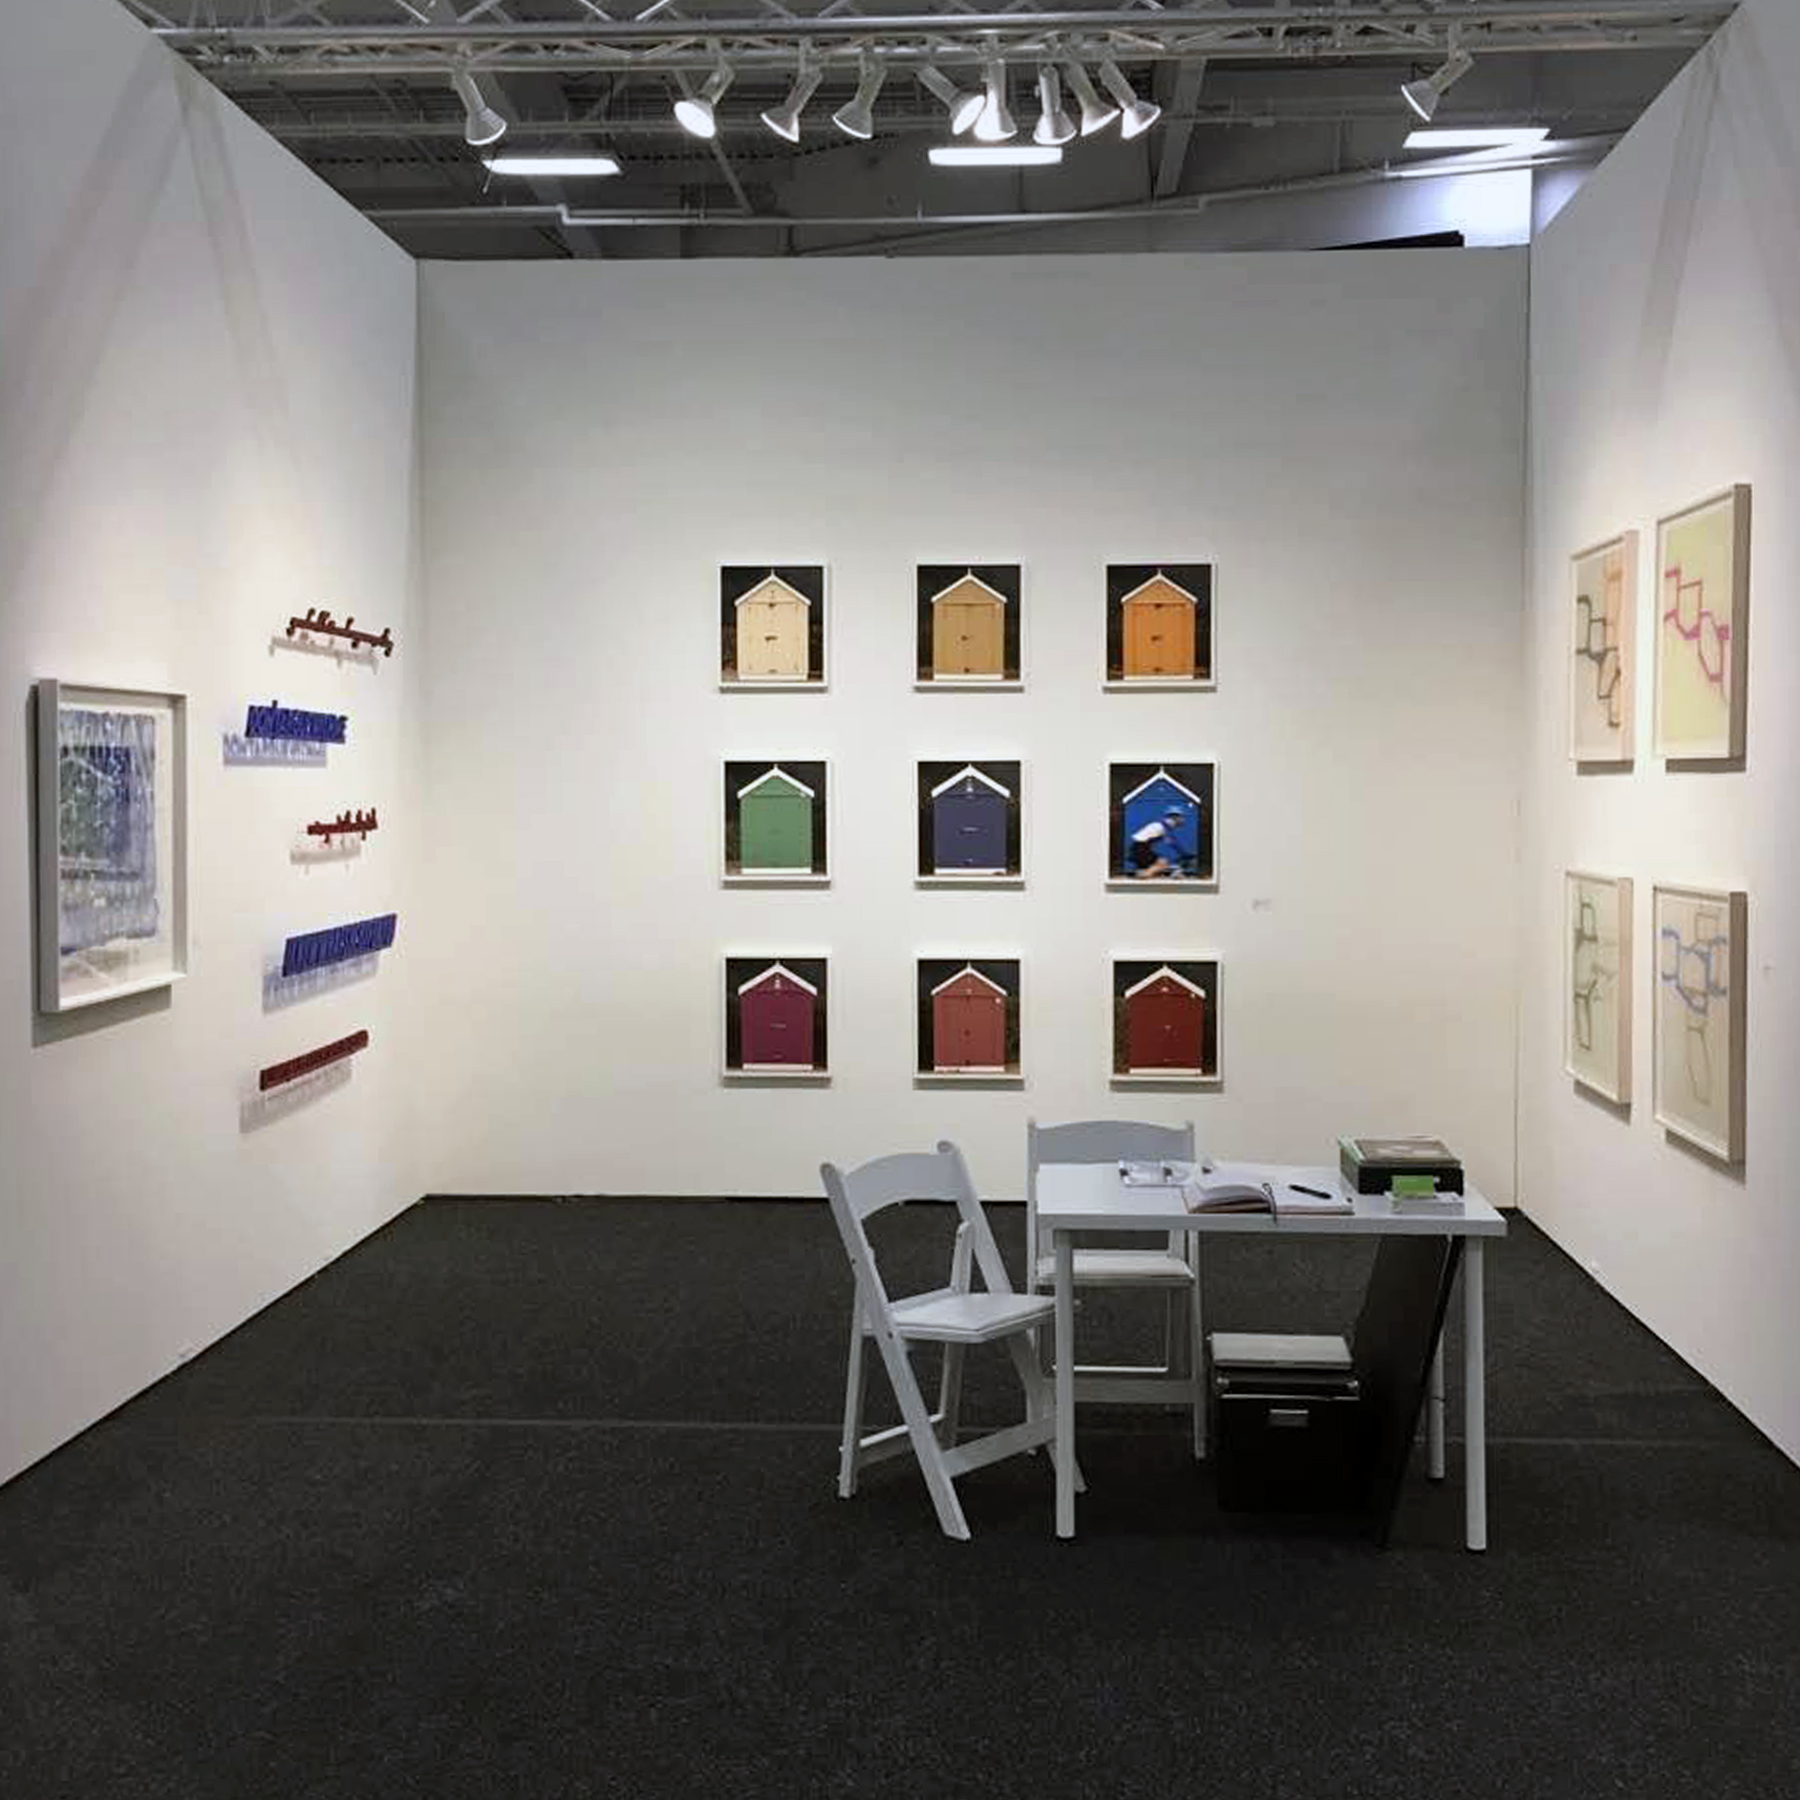 art on paper 2017 installation view 2.jpg